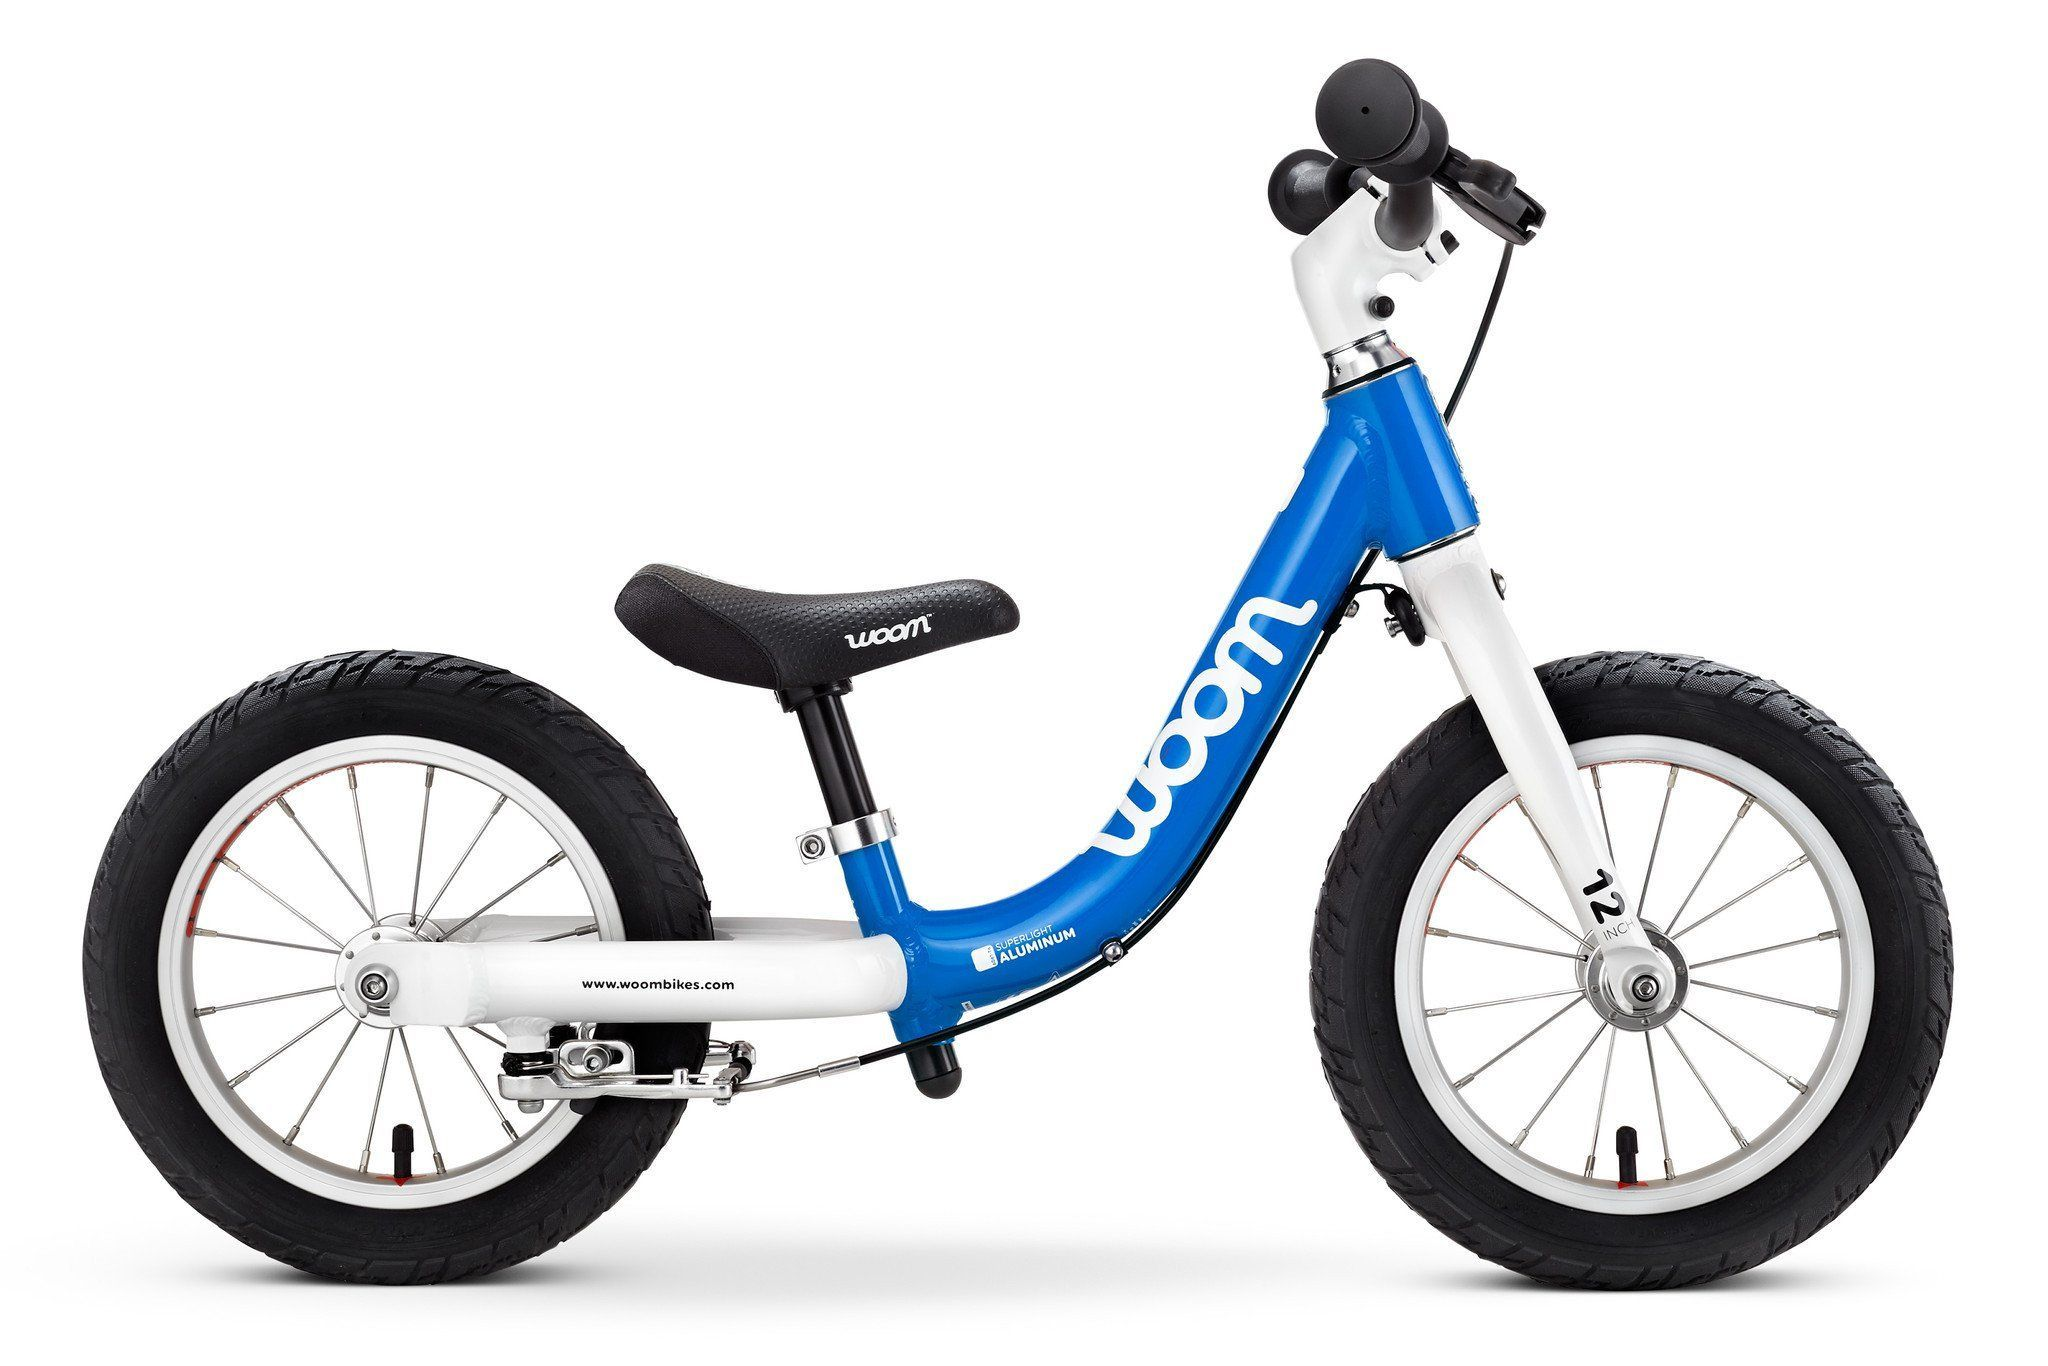 Woom 1 12 Balance Bike Kids Bike Woom Bike